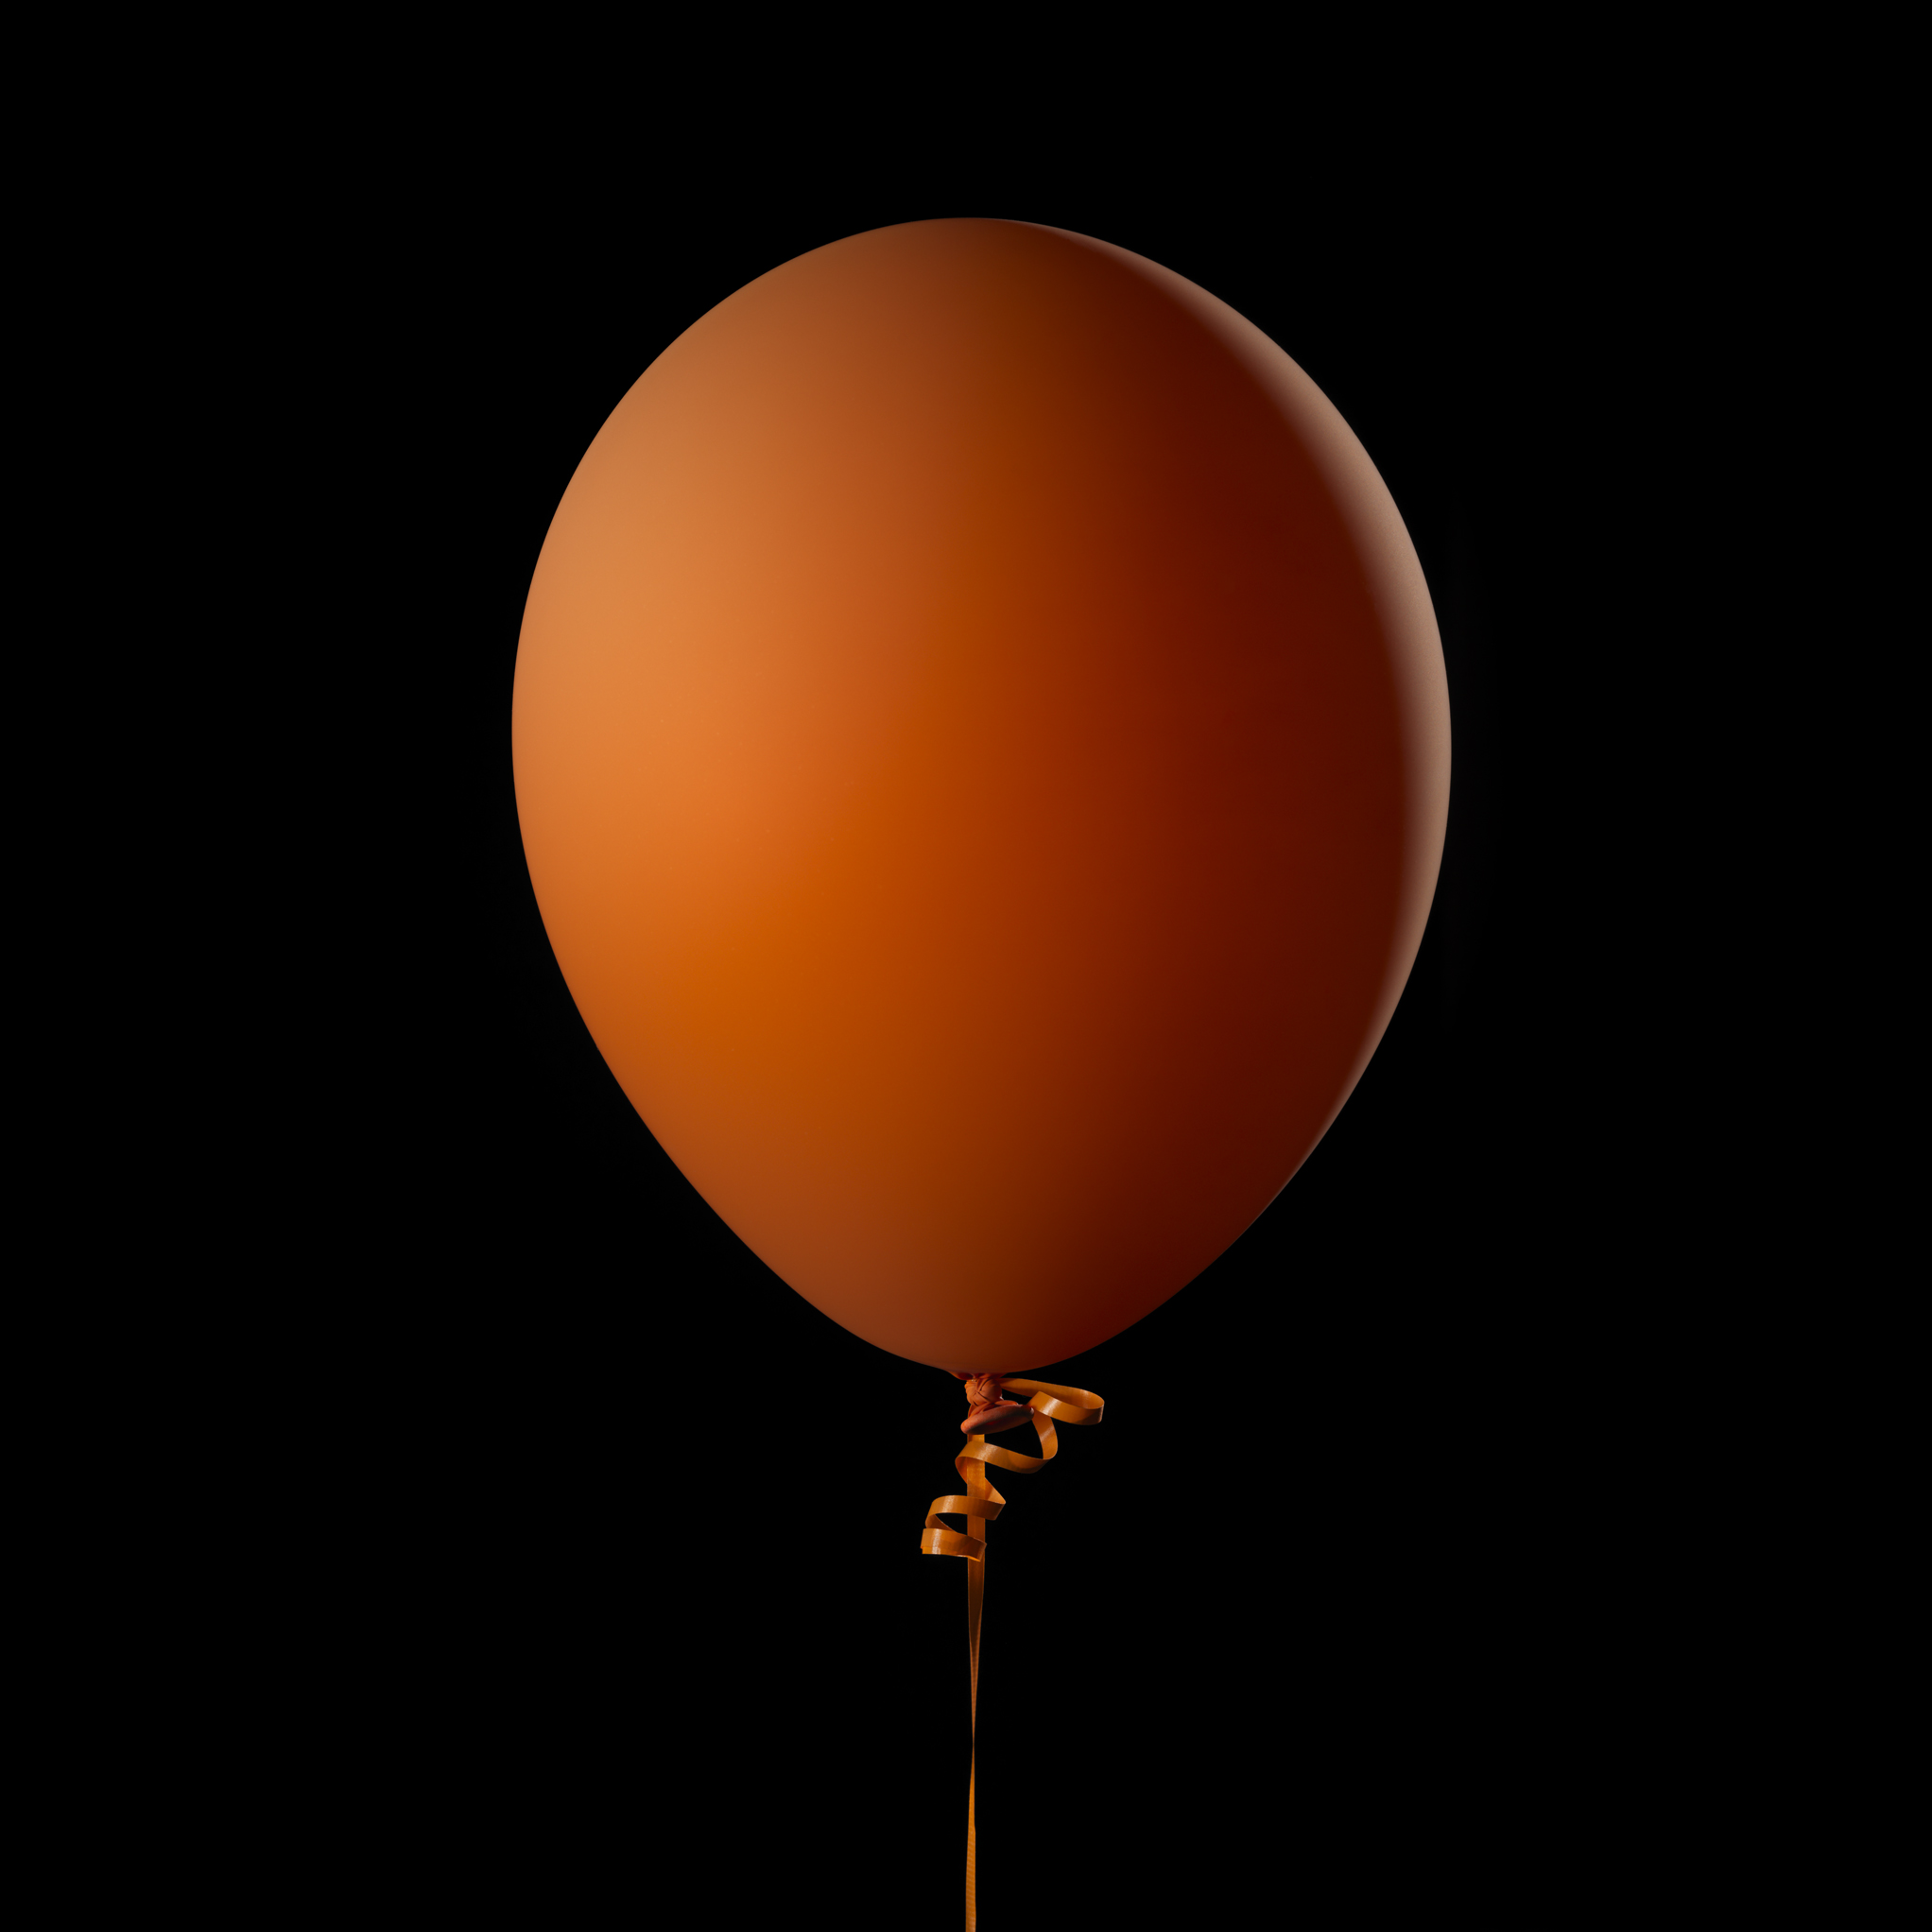 B is for Balloon